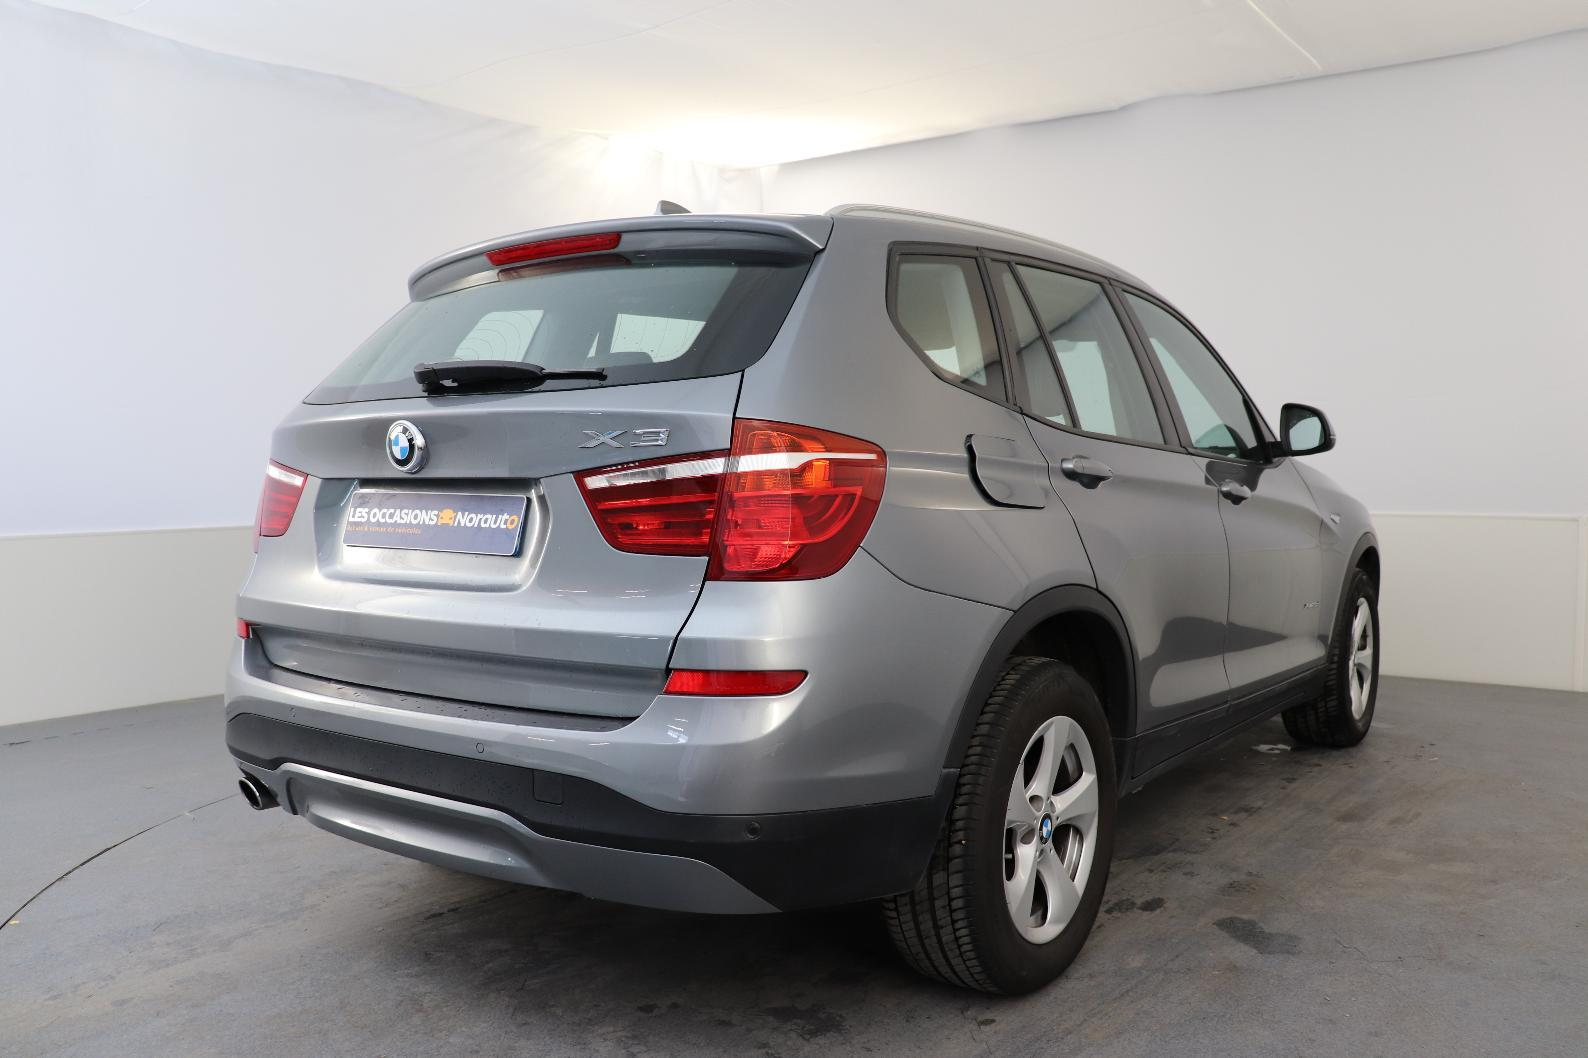 BMW X3 F25 LCI X3 xDrive20d 190ch Lounge Plus A